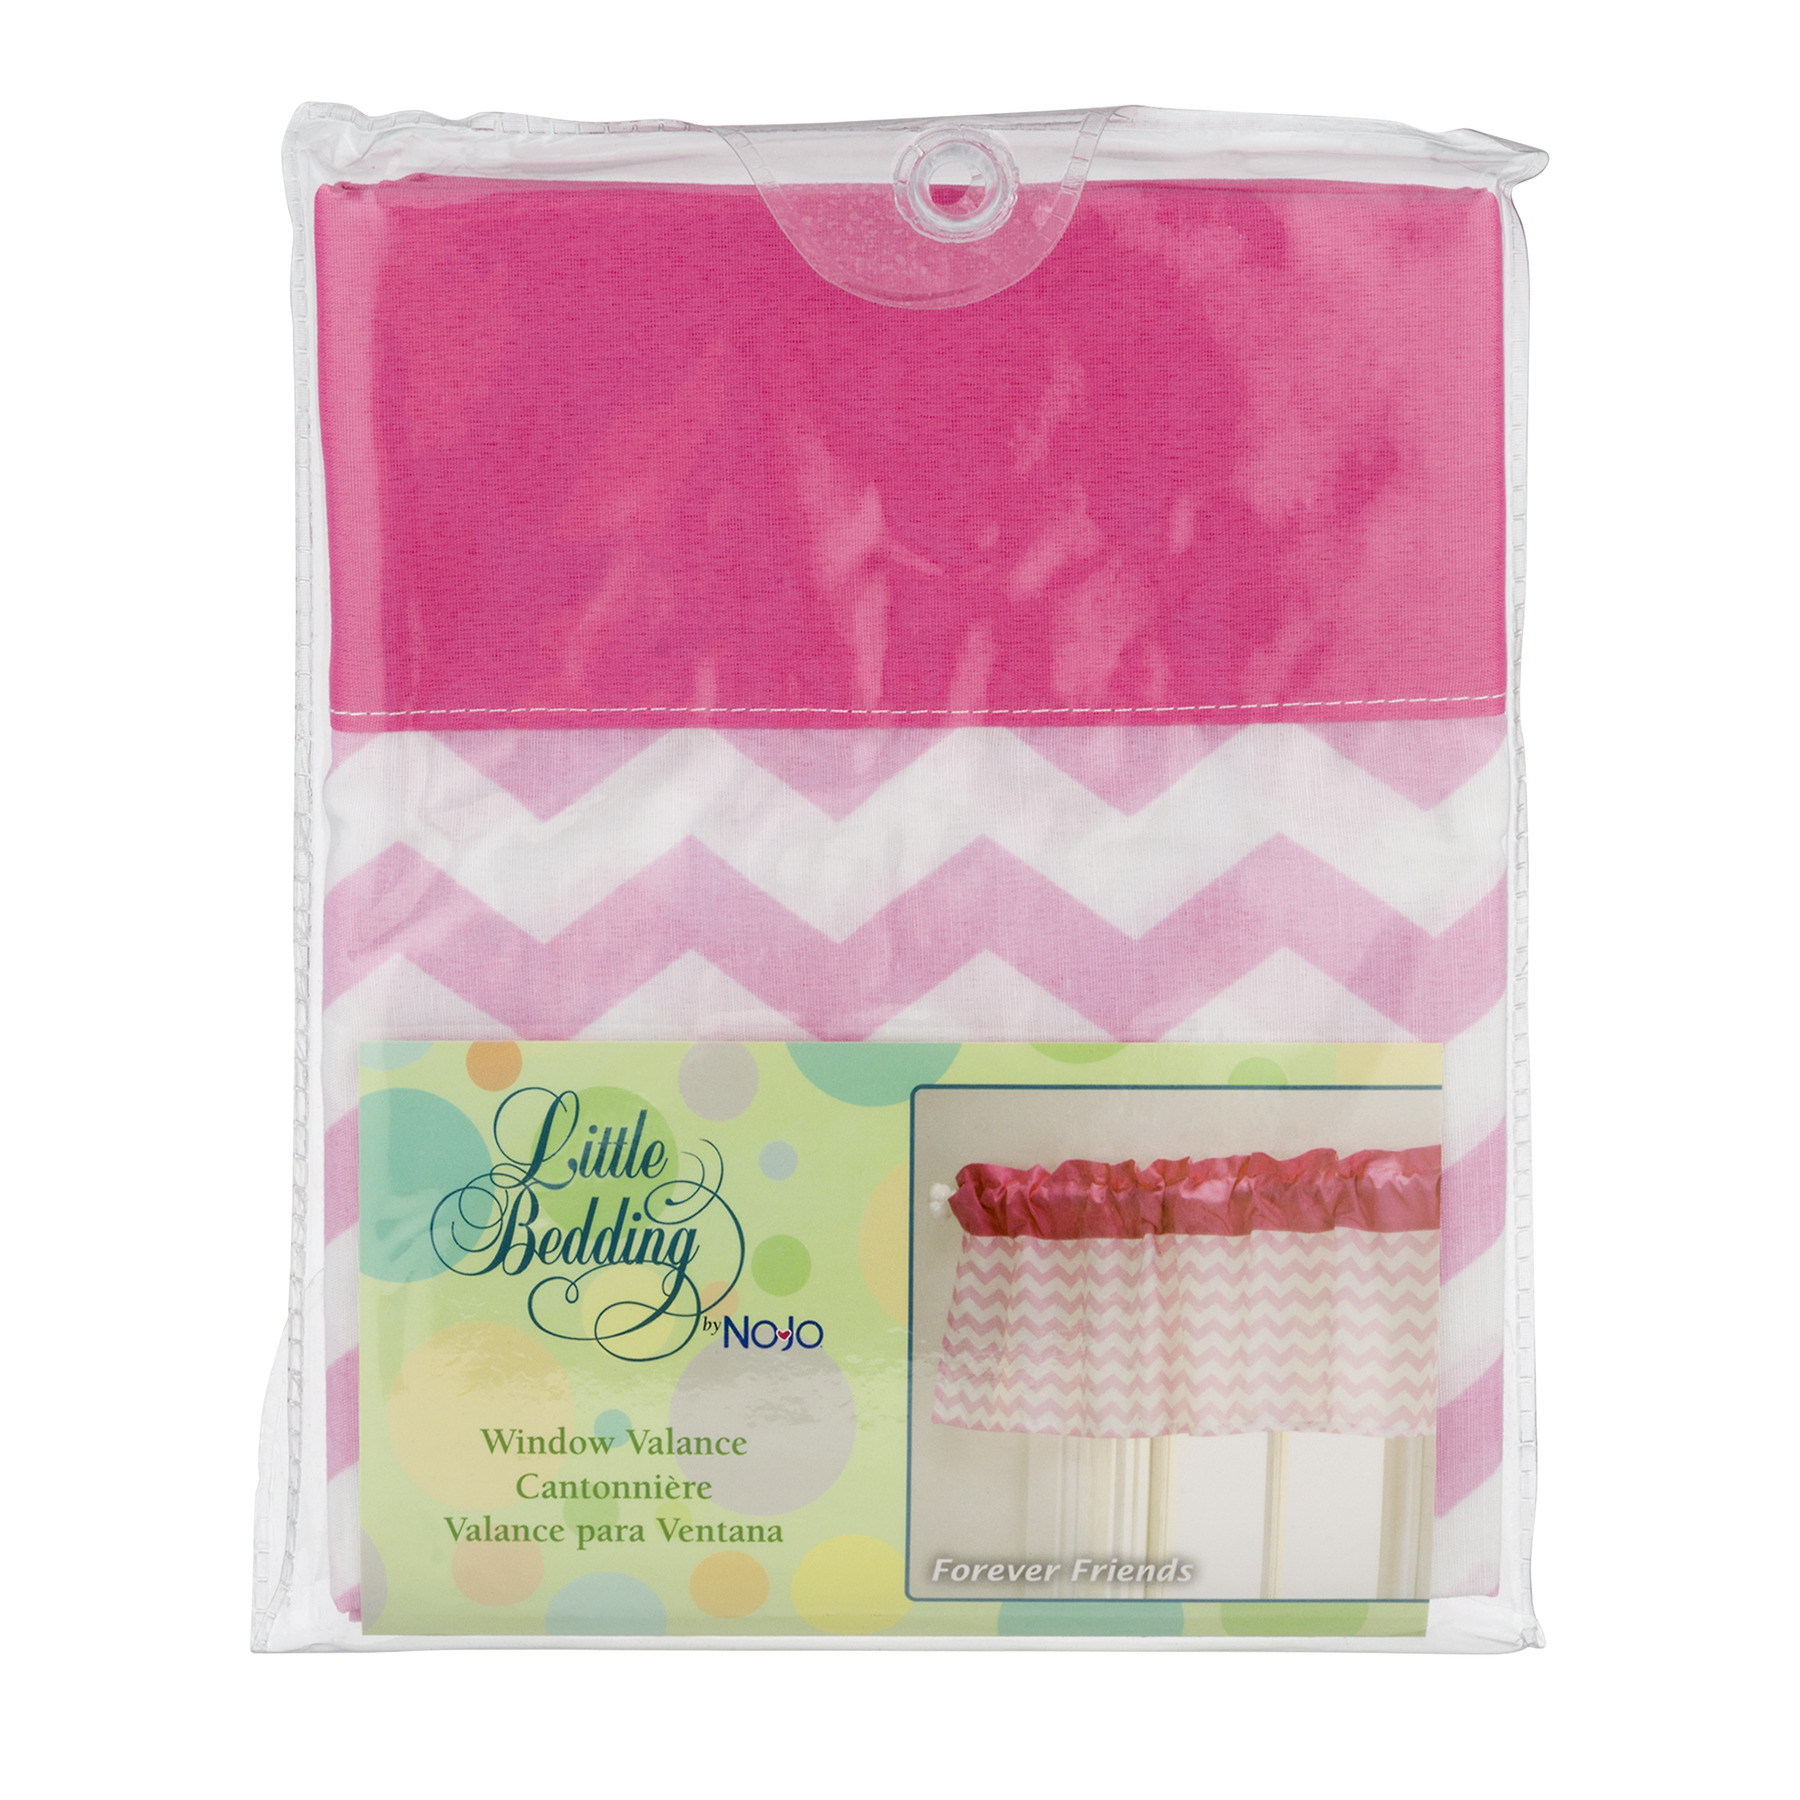 Little Bedding Window Valance, Forever Friends, 1.0 CT